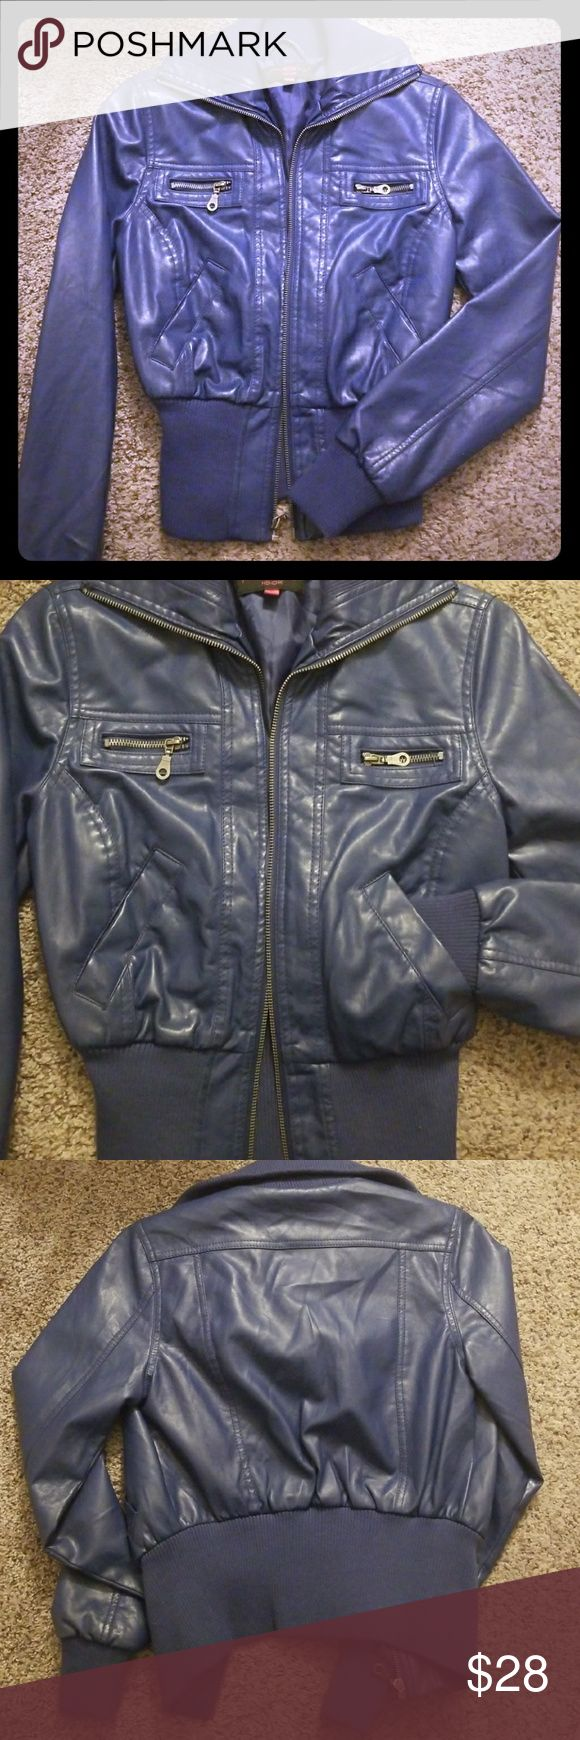 """Nwot purple """"leather"""" jacket Awesome purple leather like jacket! Never worn and ready for your fall wardrobe! New Look Jackets & Coats"""